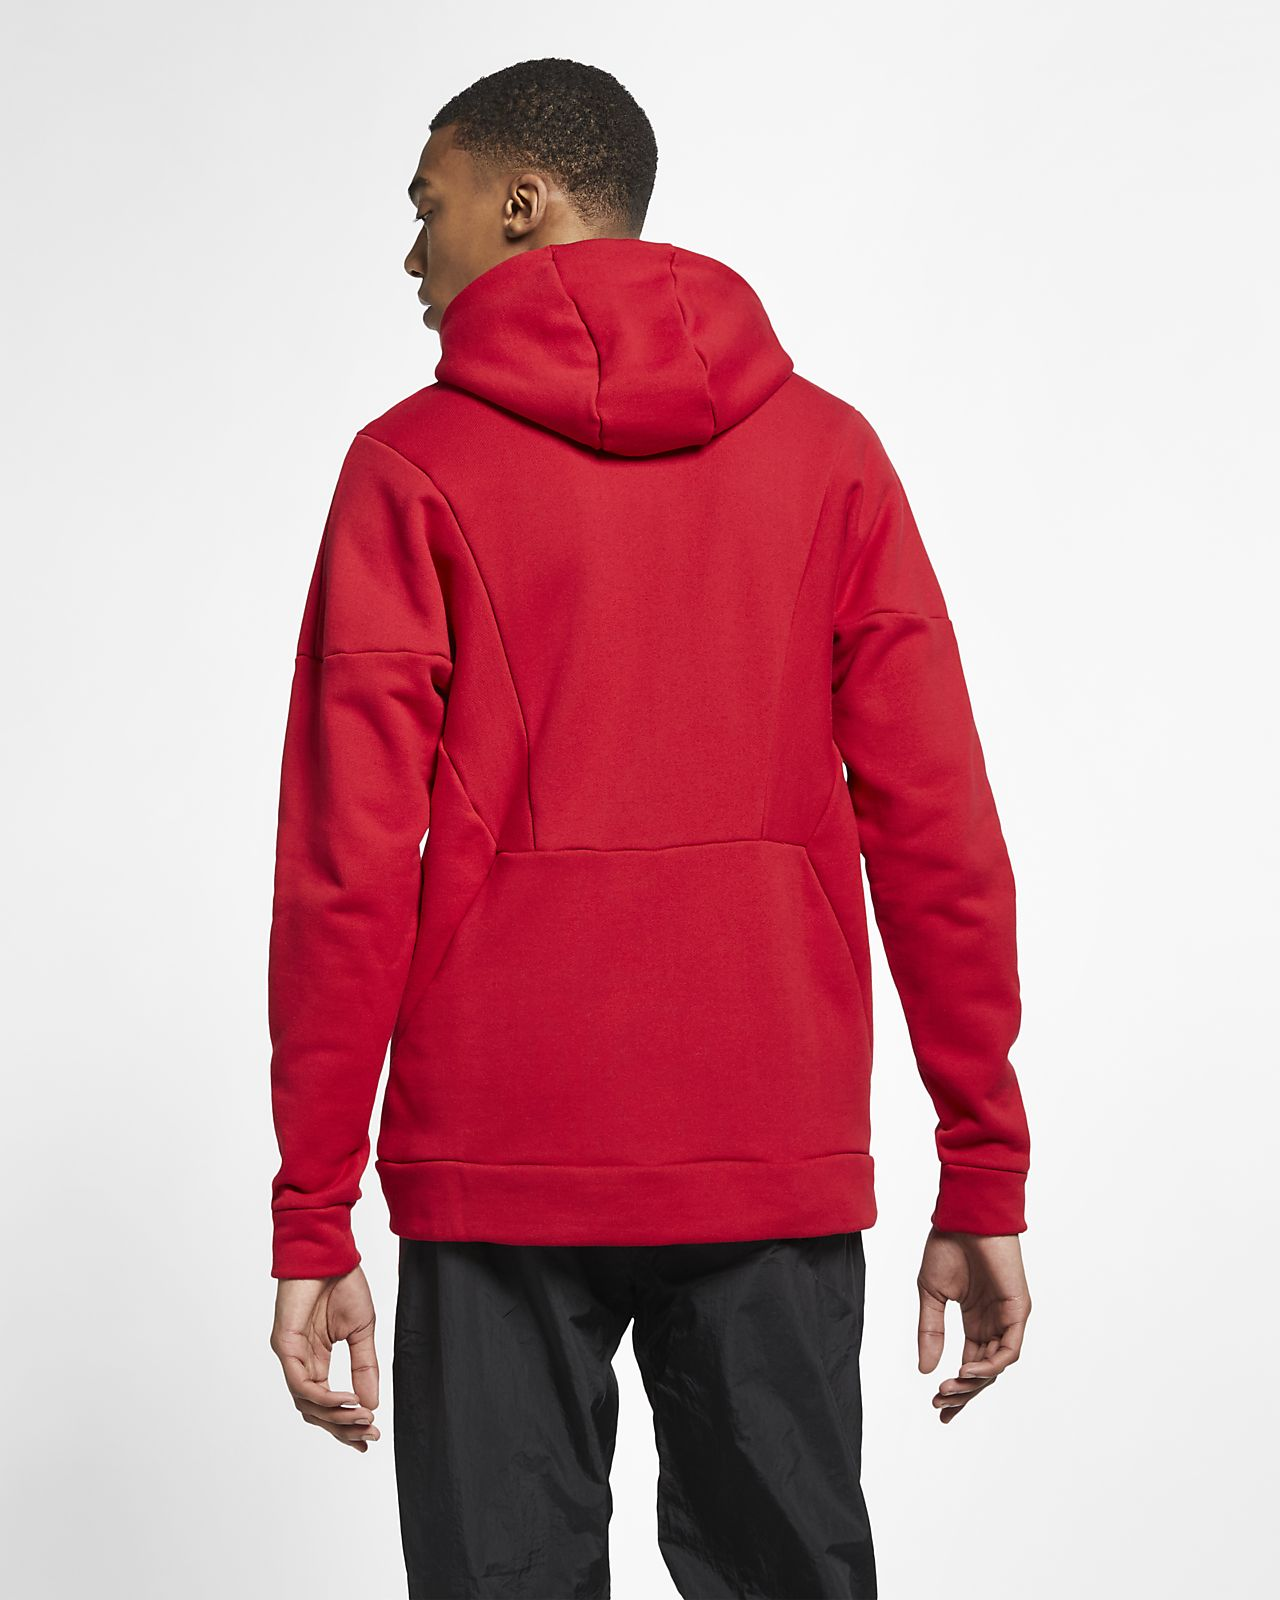 70831cd46d2 Jordan Flight Loop Men's Full-Zip Hoodie. Nike.com